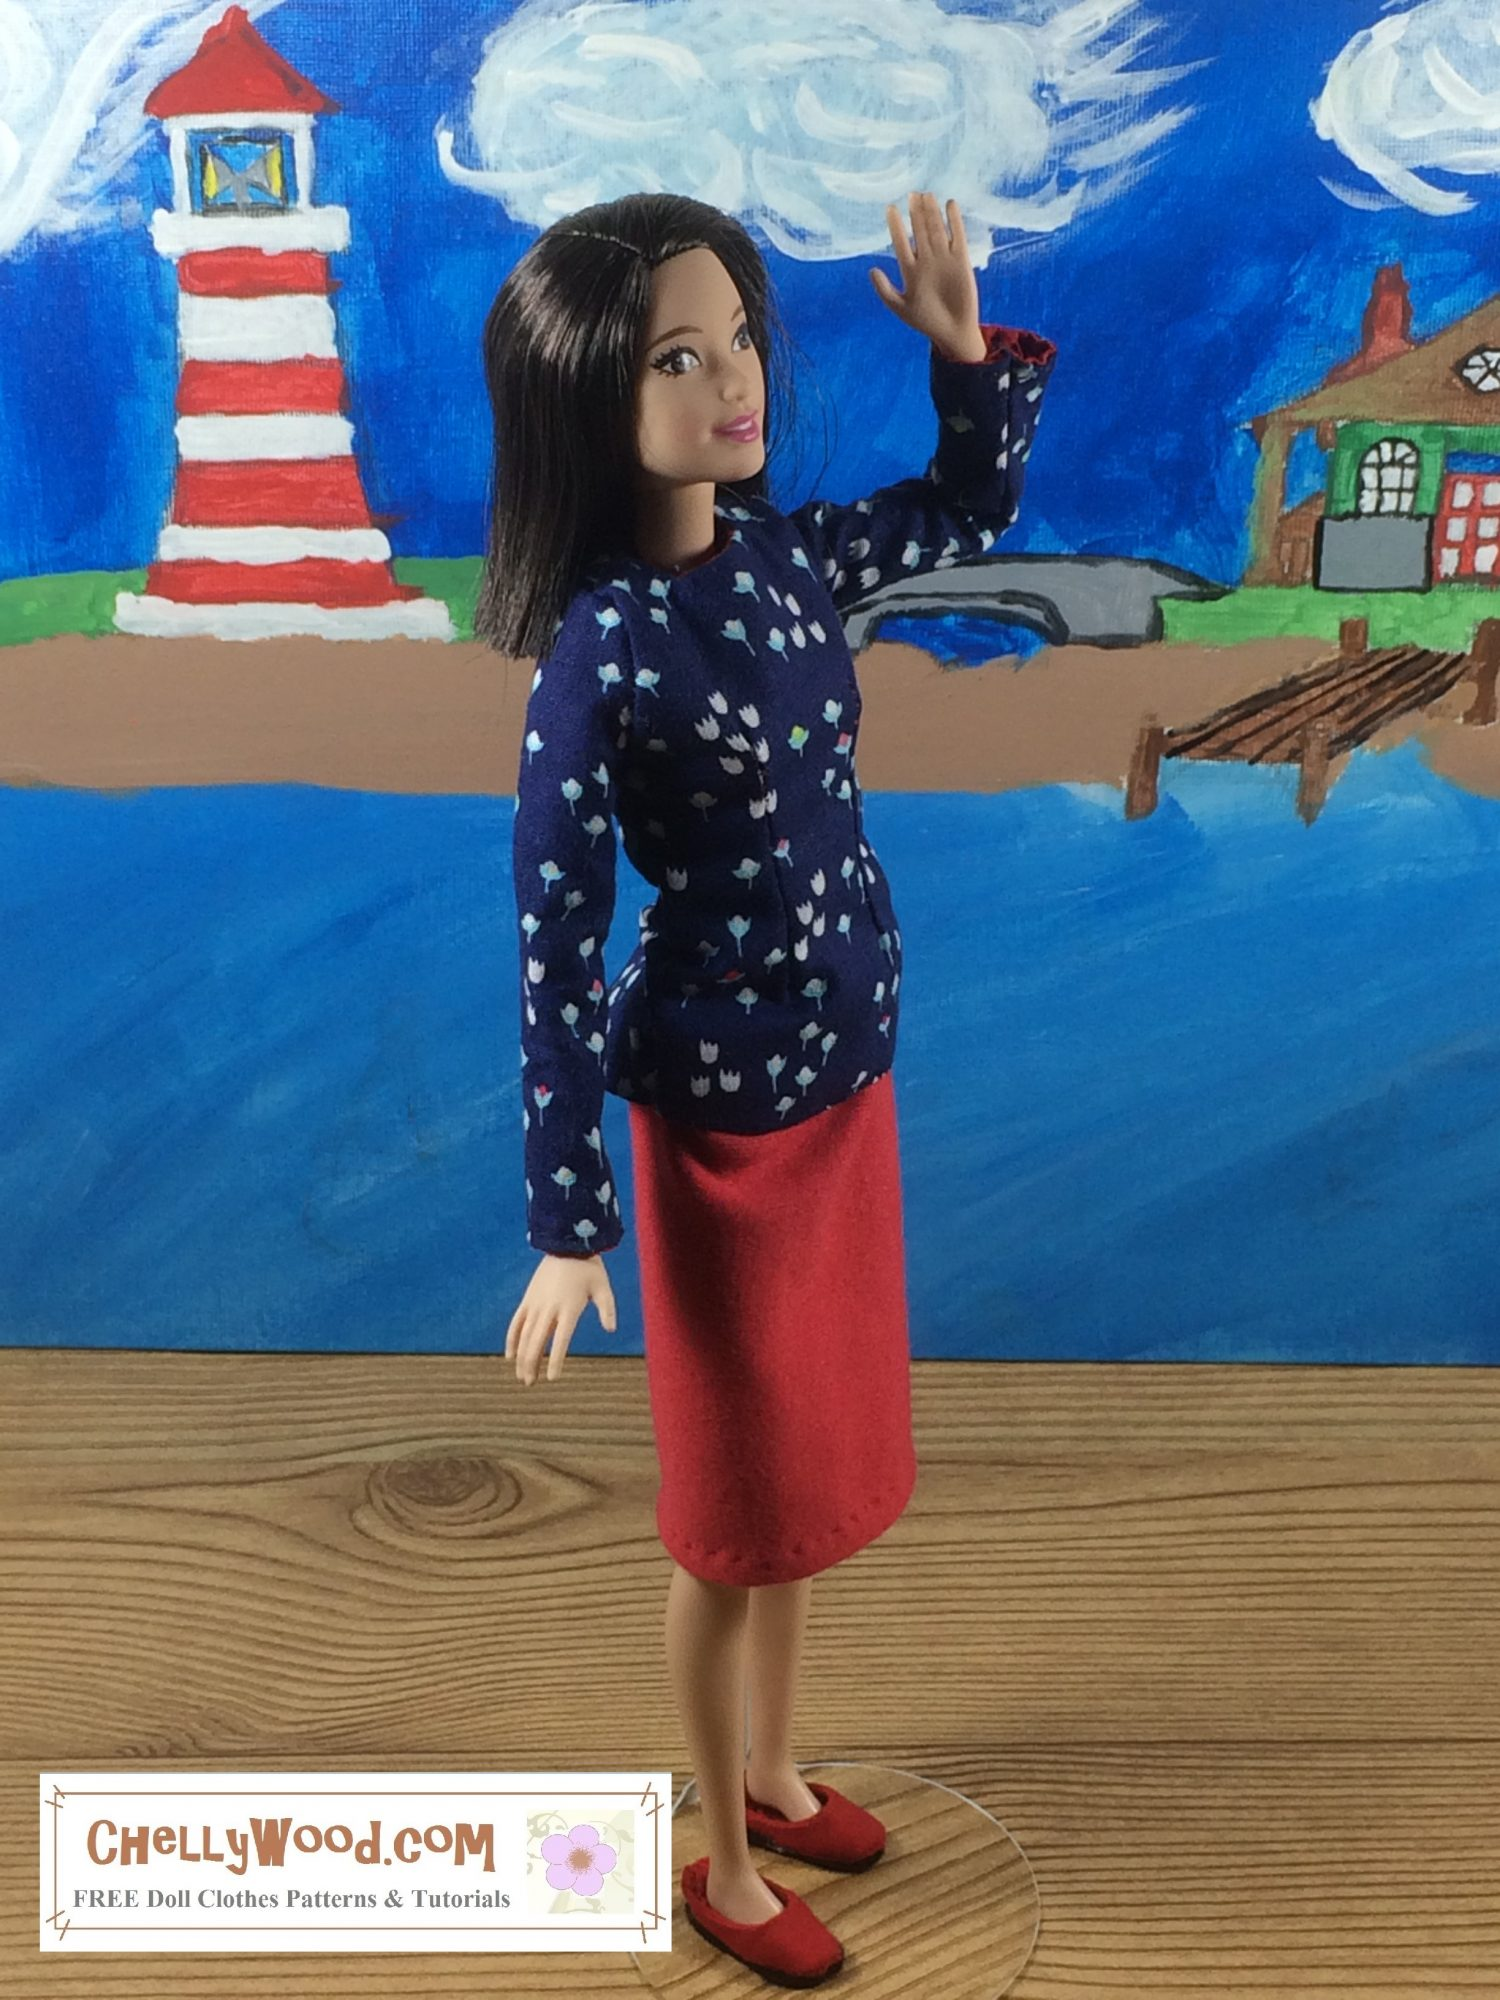 On a boardwalk near a beach, Tall Barbie stands waving to someone. She wears a navy blue floral long sleeved shirt made of cotton with a red jersey fabric pencil skirt.